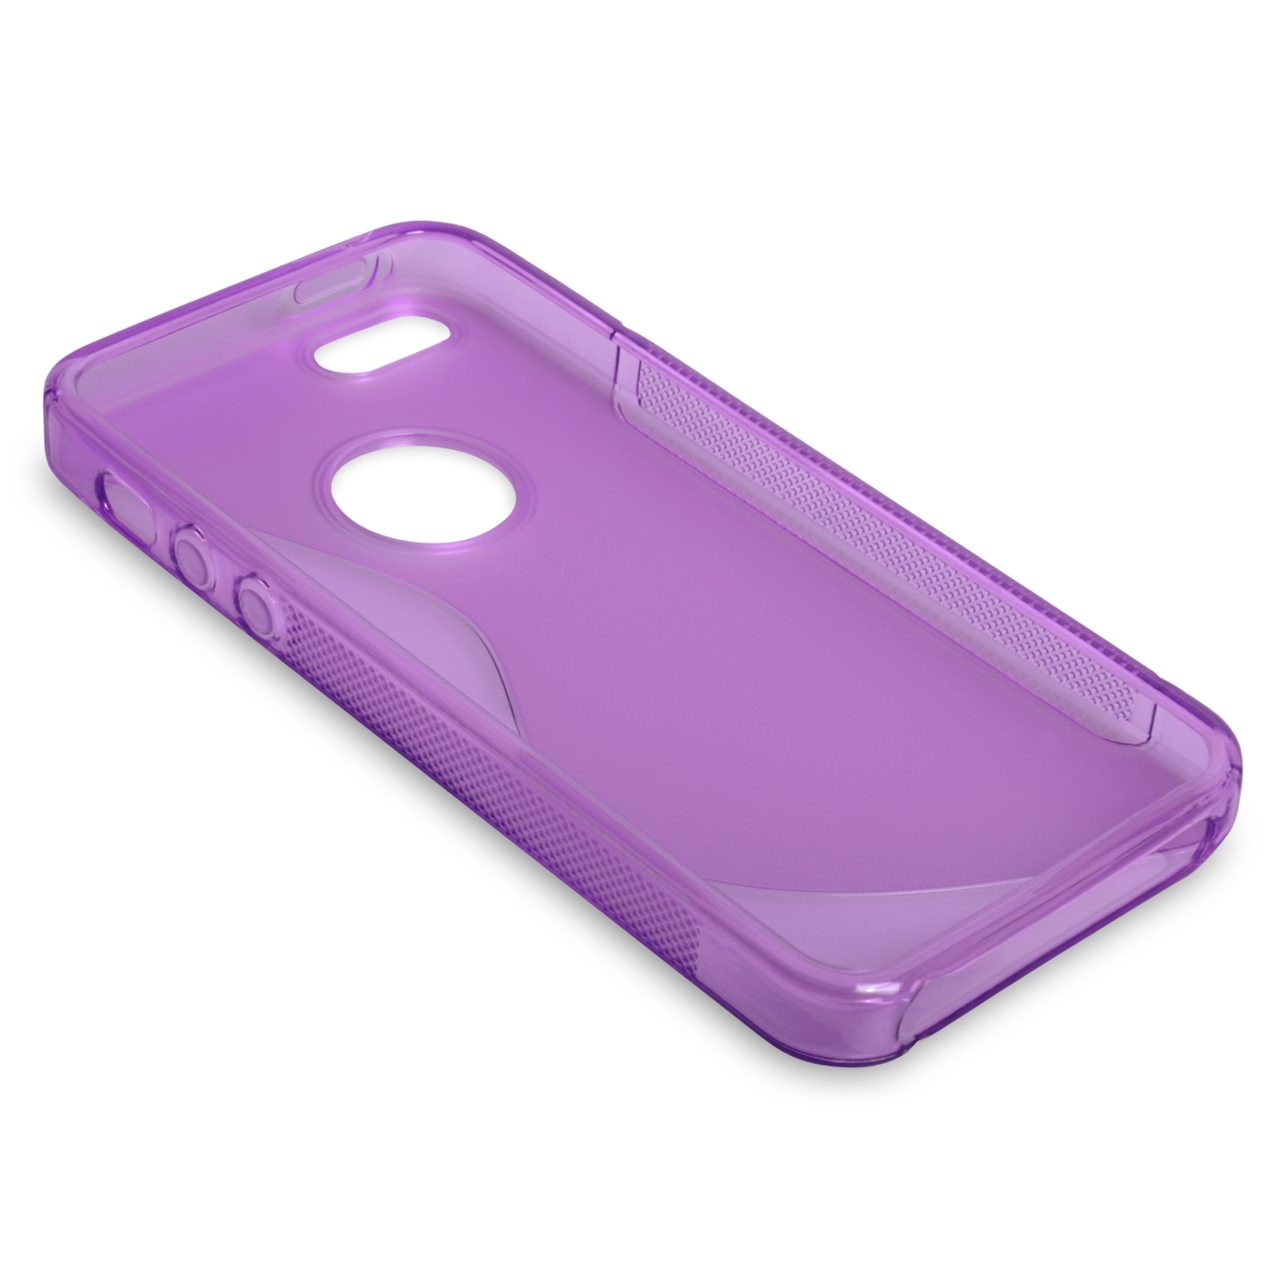 Caseflex iPhone 5 / 5S S-Line Gel Case - Purple